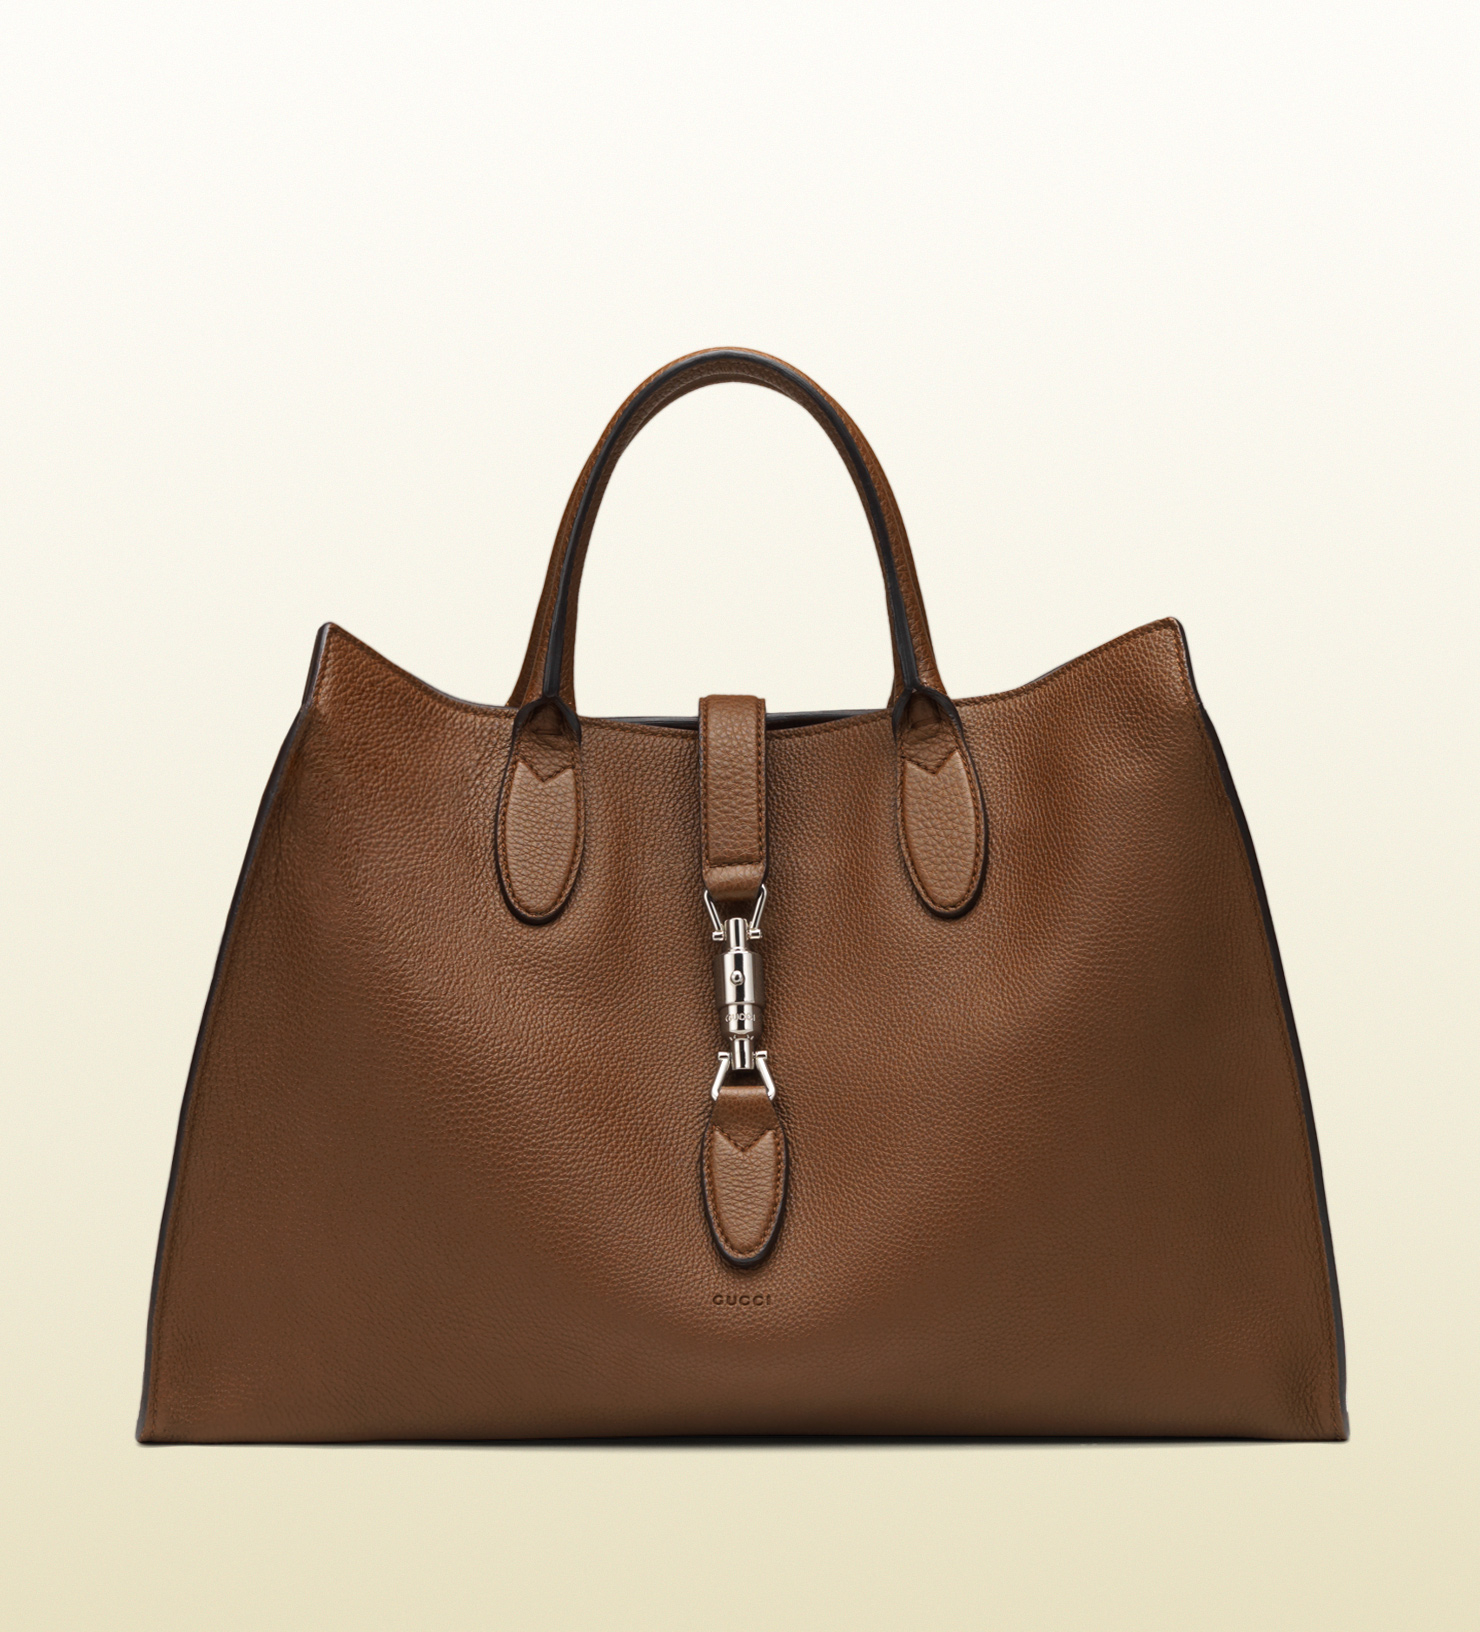 Gucci Jackie Soft Leather Top Handle Bag In Brown Lyst